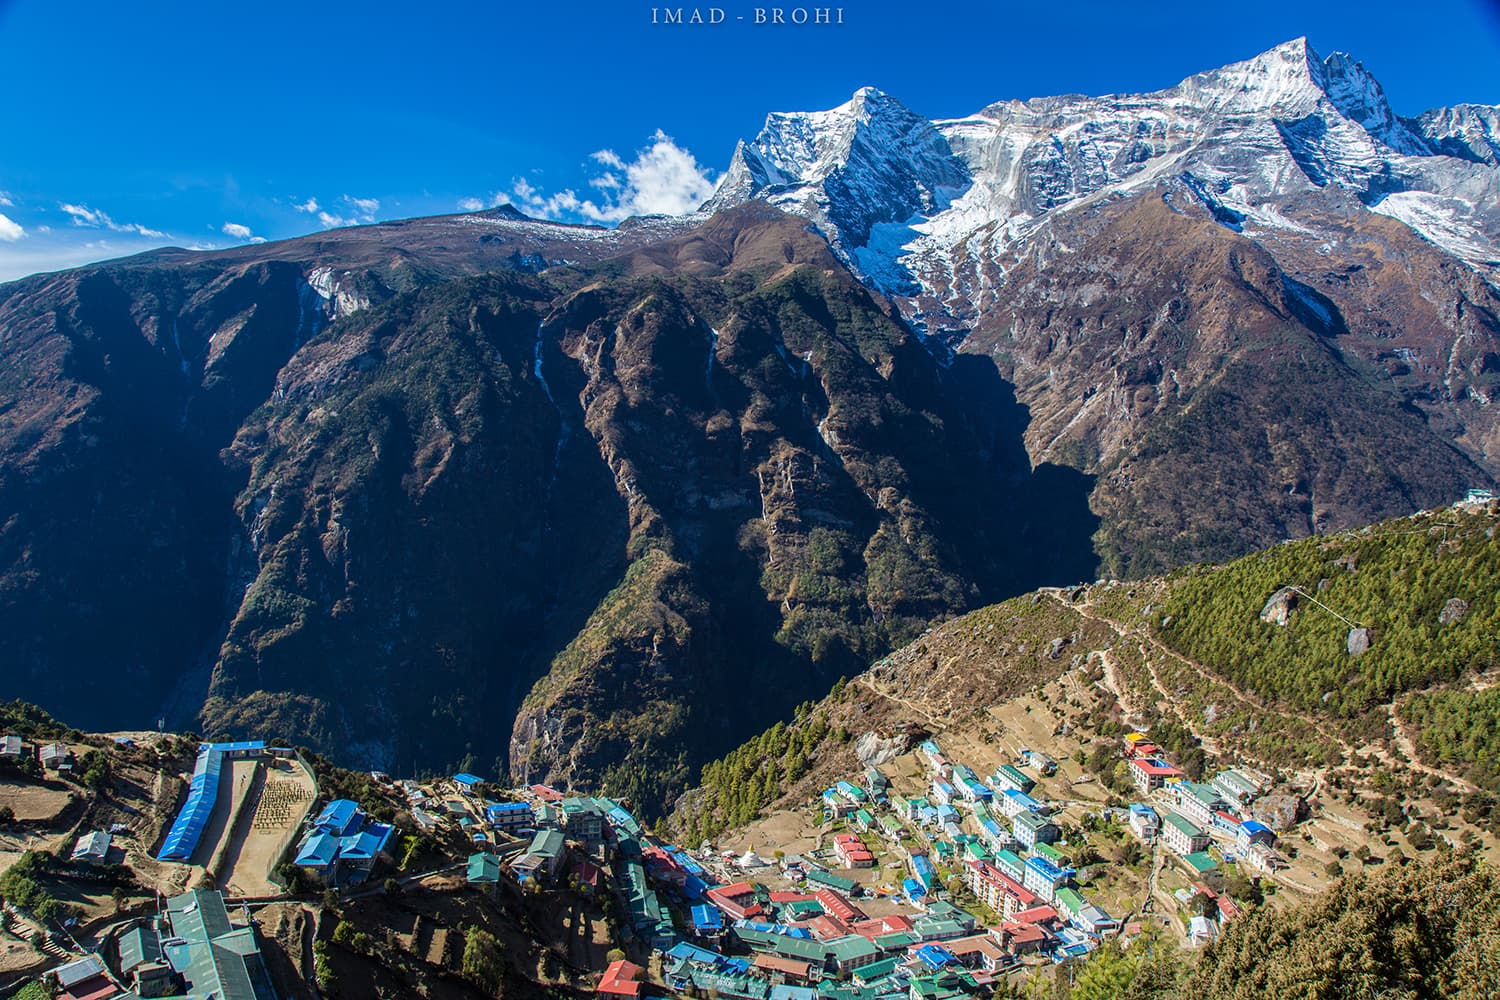 Day 4: View of Namche Bazar from the top with Kongde Ri (6,187m) in the background.